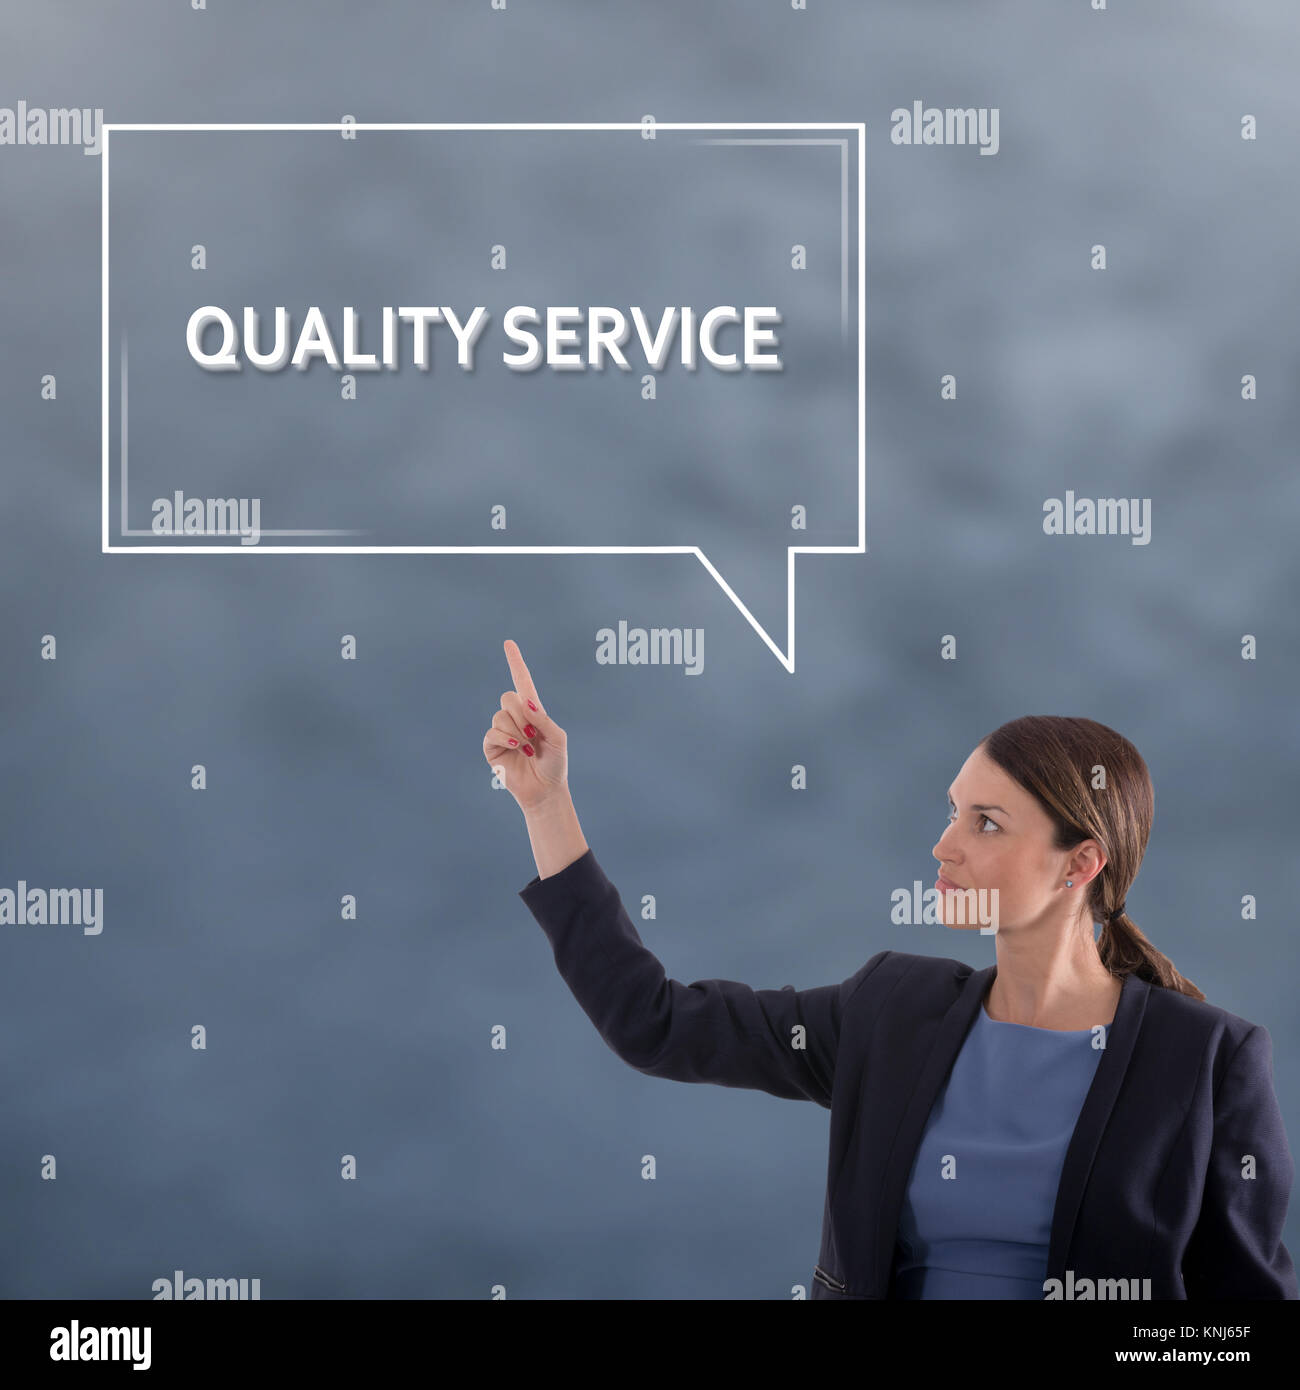 QUALITY SERVICE Business Concept. Business Woman Graphic Concept - Stock Image